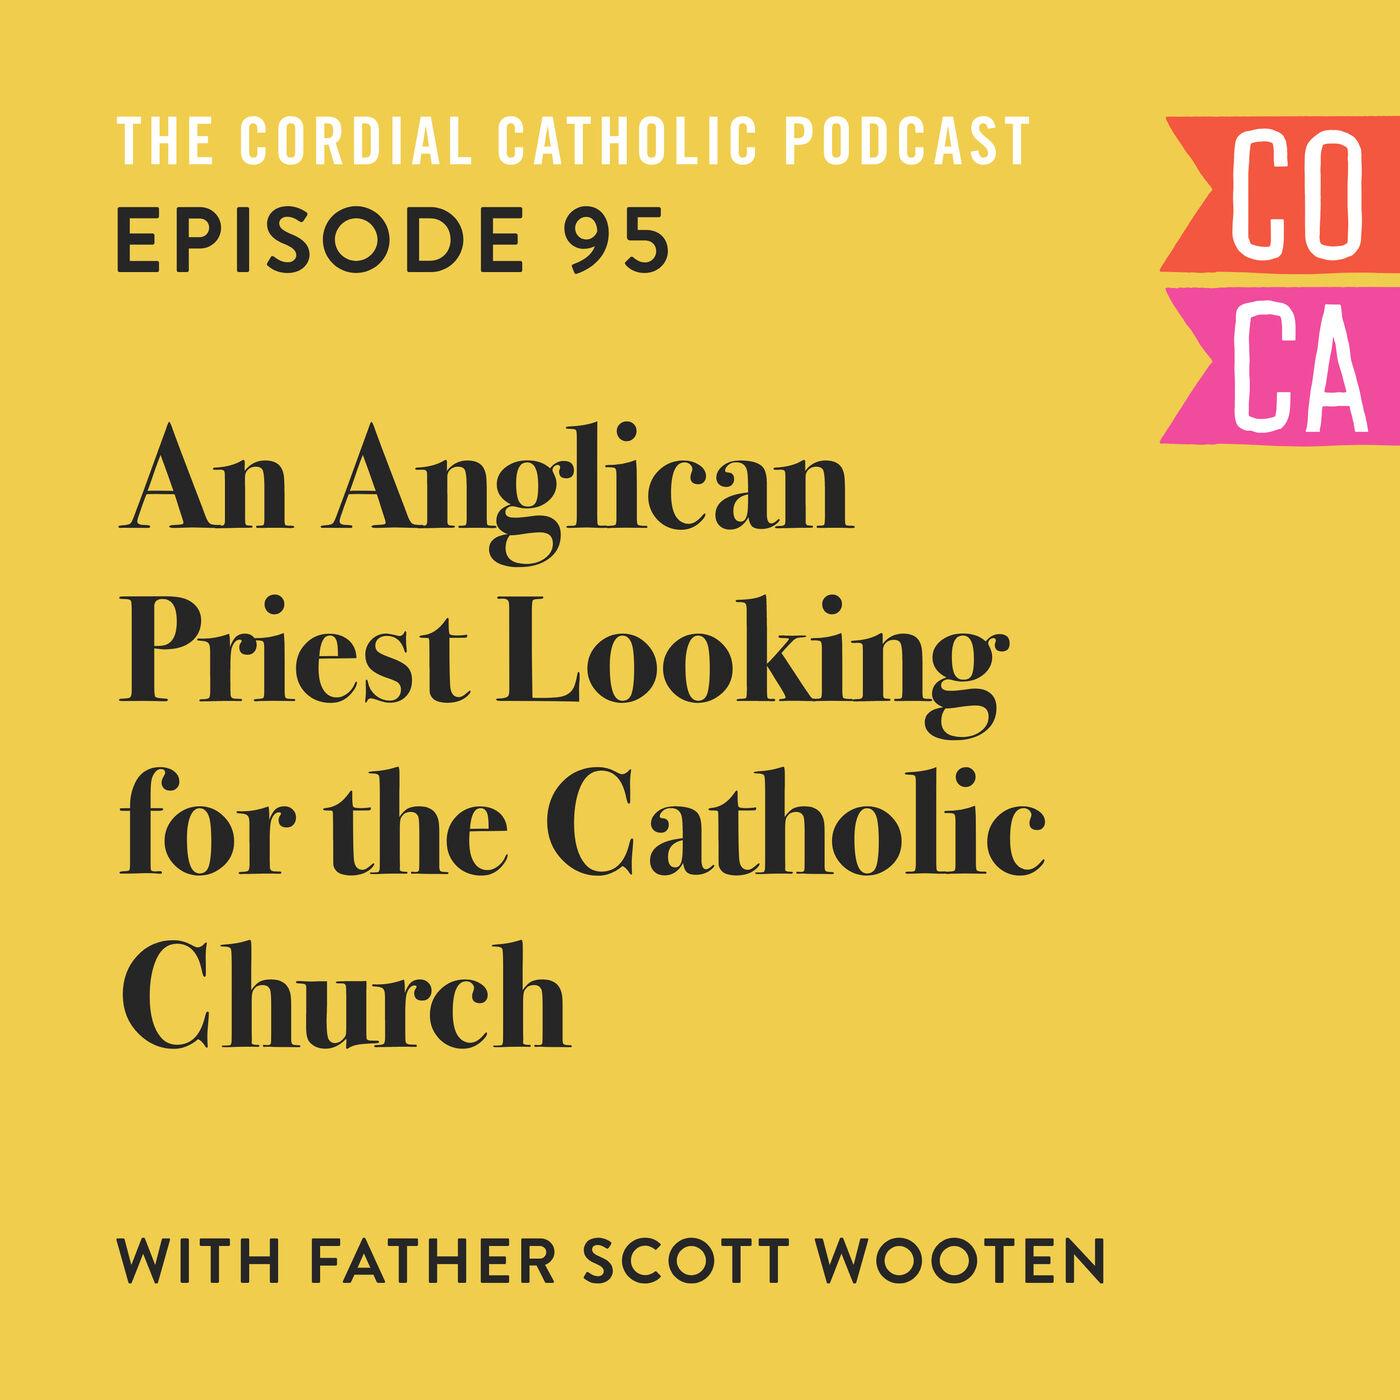 095: An Anglican Priest Looking for the Catholic Church (w/ Father Scott Wooten)